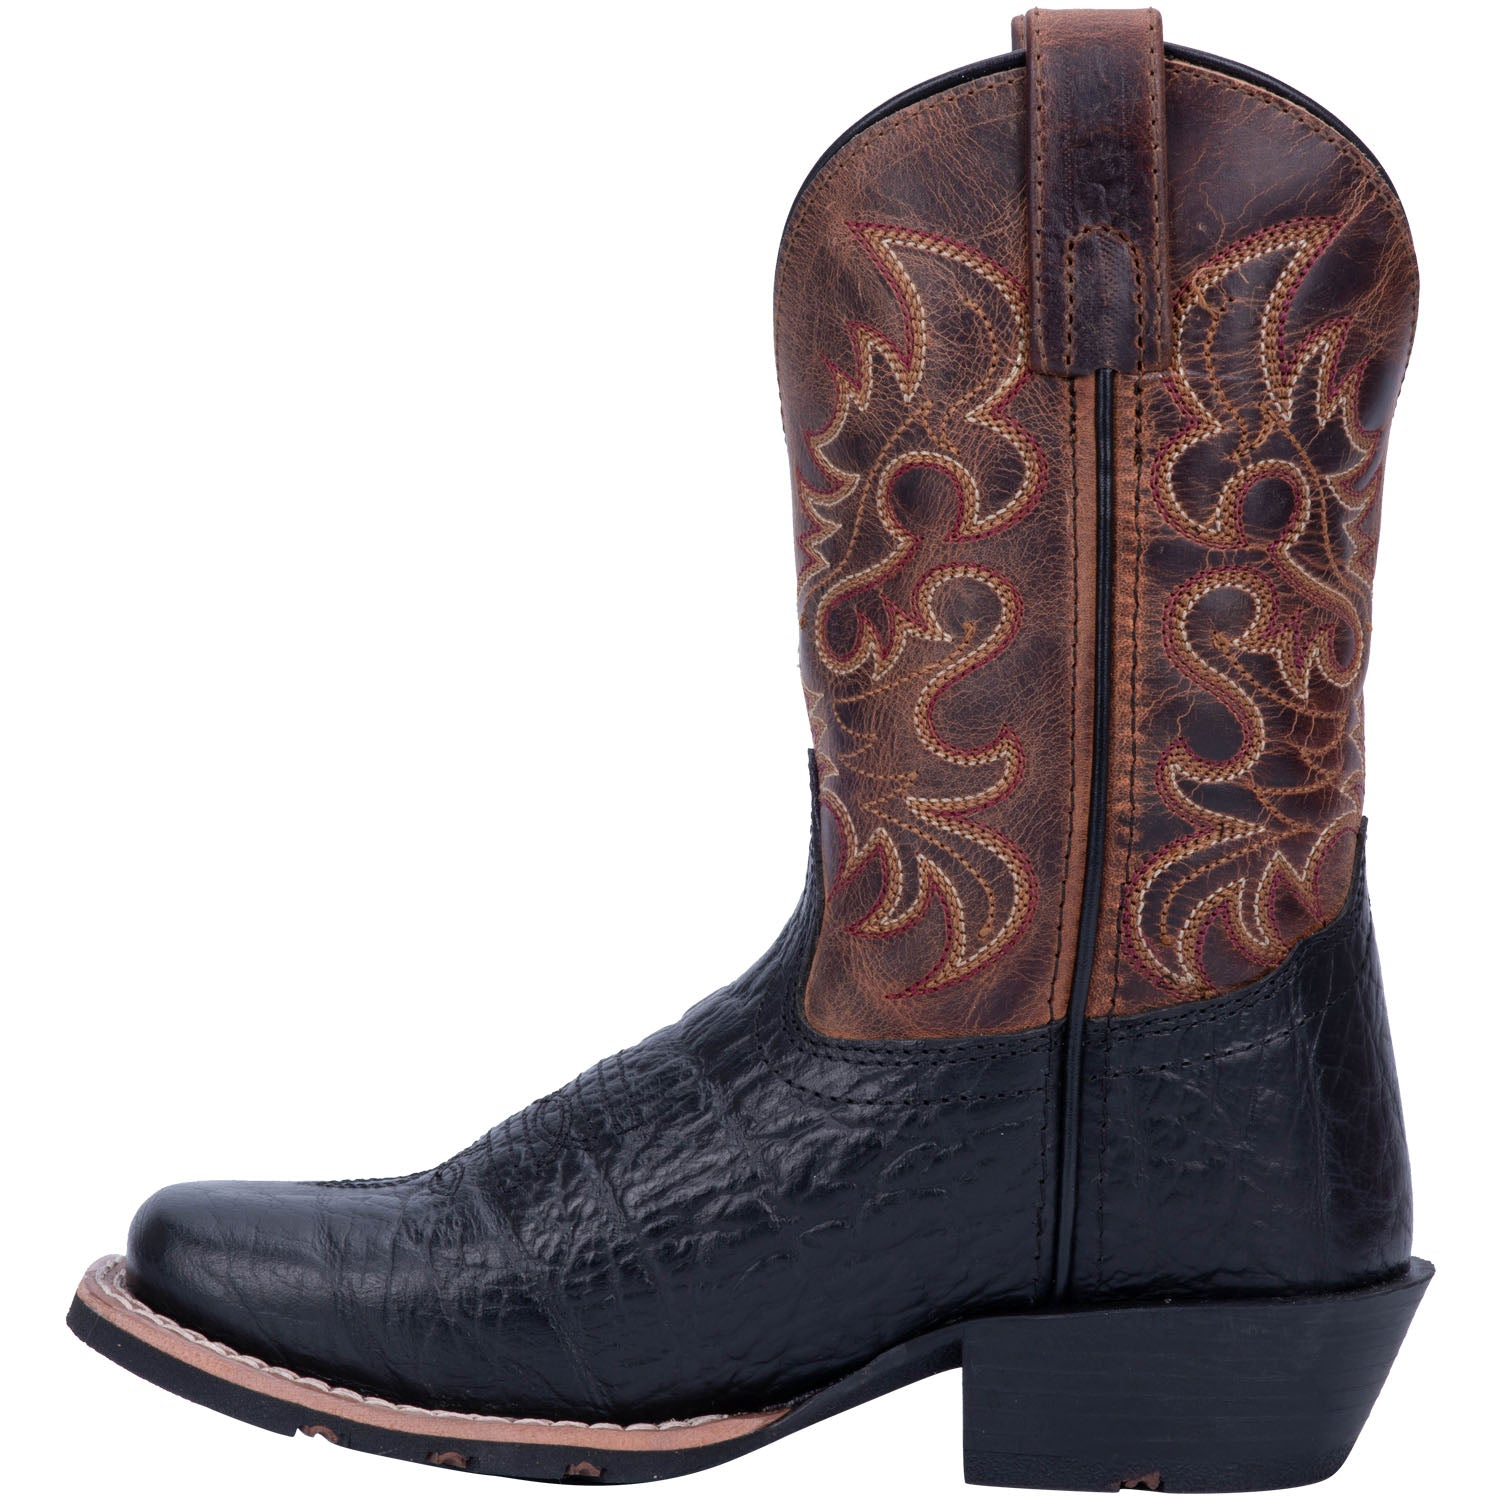 LITTLE RIVER LEATHER CHILDREN'S BOOT 4253840441386